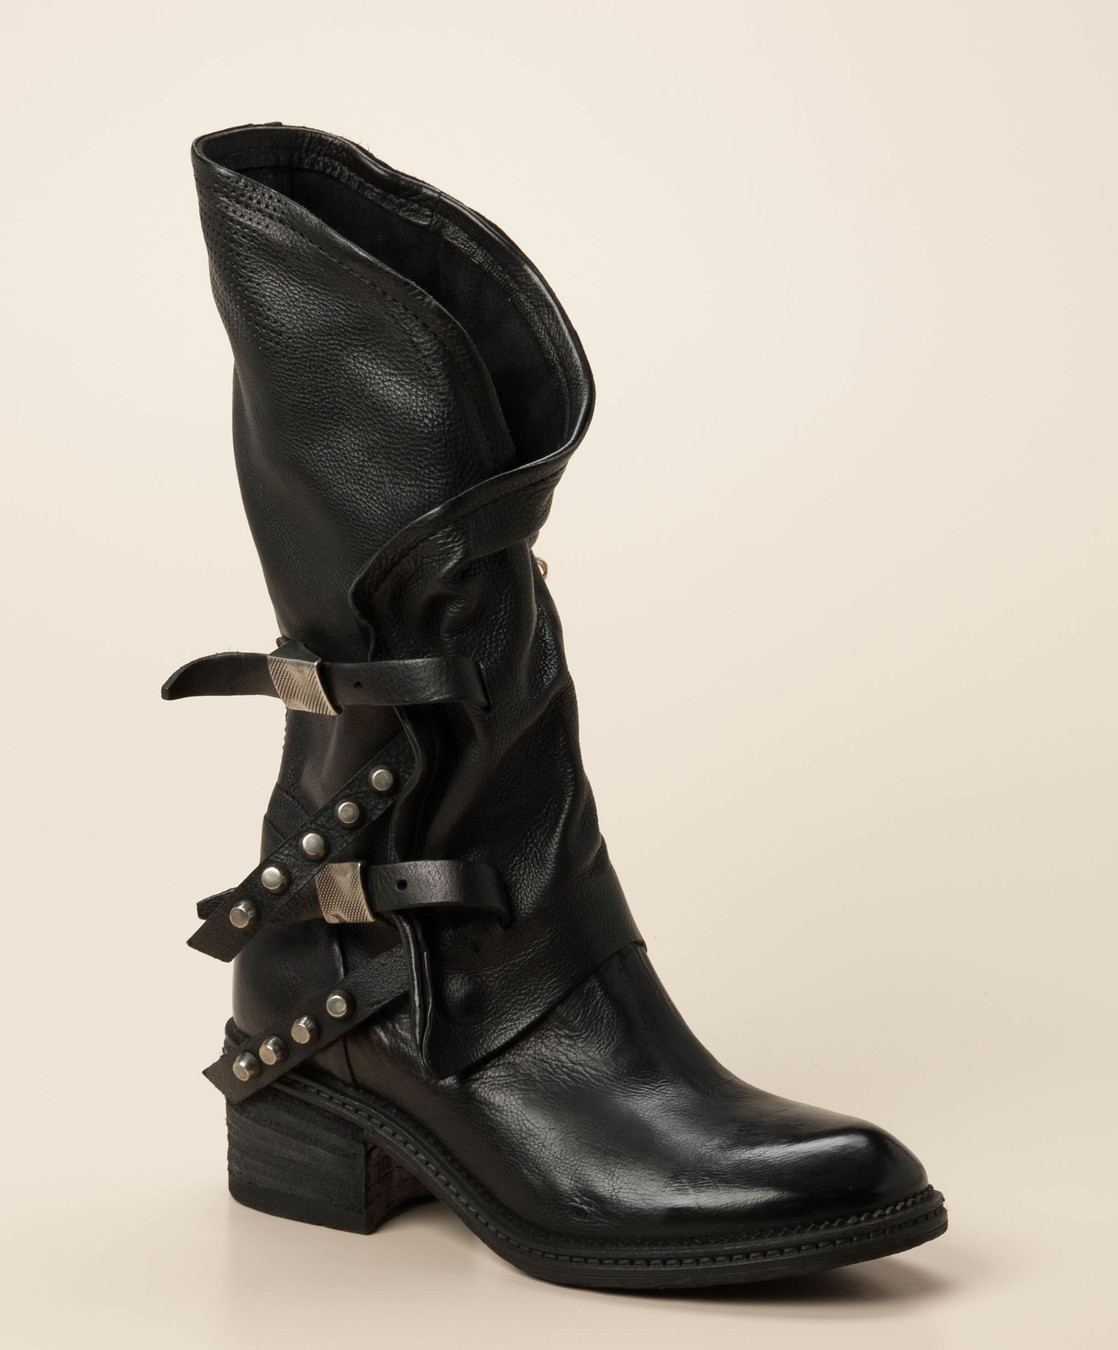 detailed look 3d5b0 c0991 Stiefel